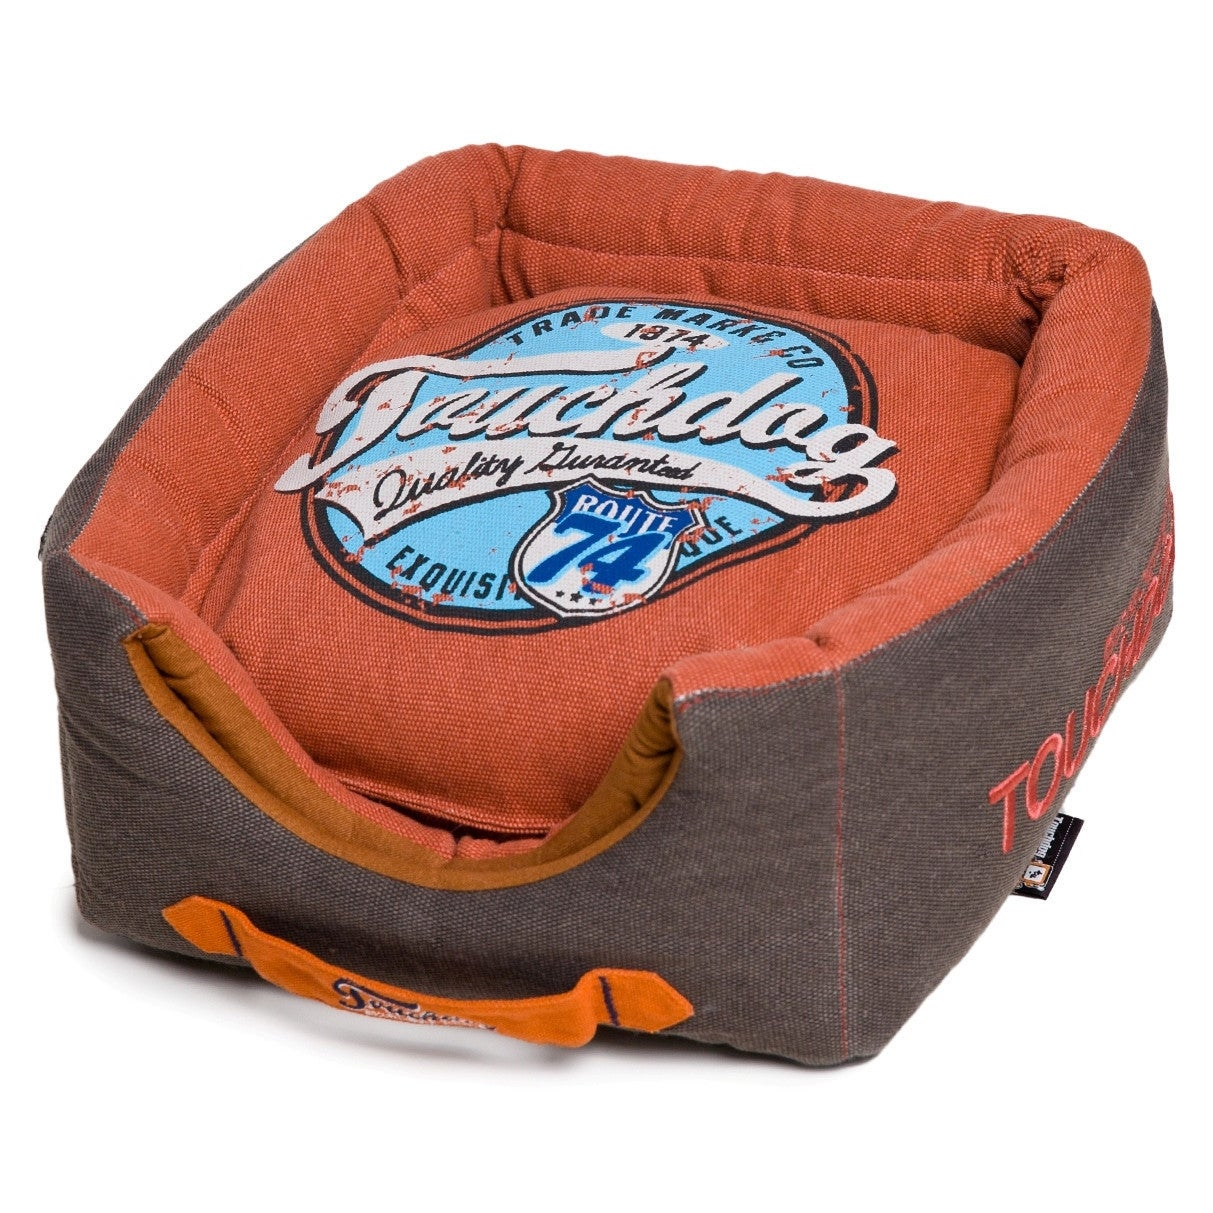 Petlife Touchdog Convertible and Reversible Vintage Print...